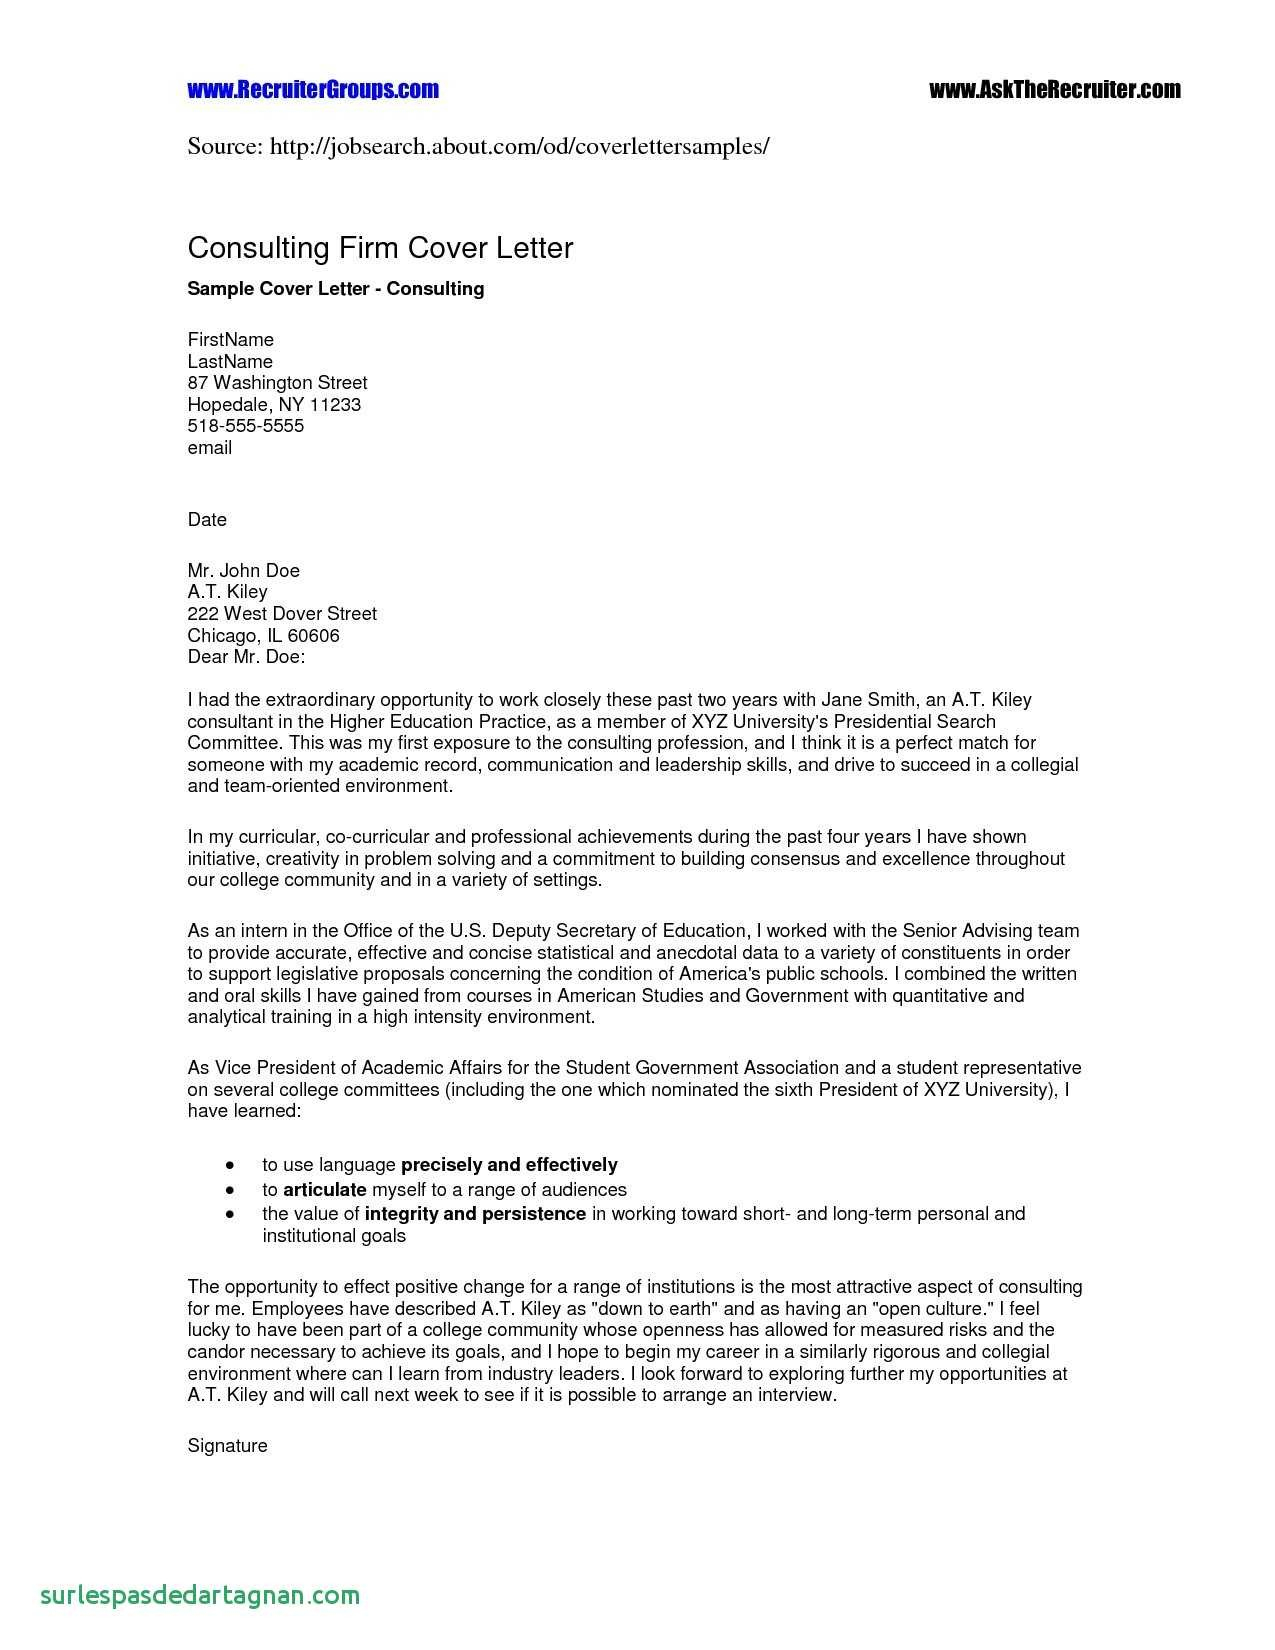 Cover Letter Template Google Docs - Business Letter Template Google Docs Best Business Receipt Templates